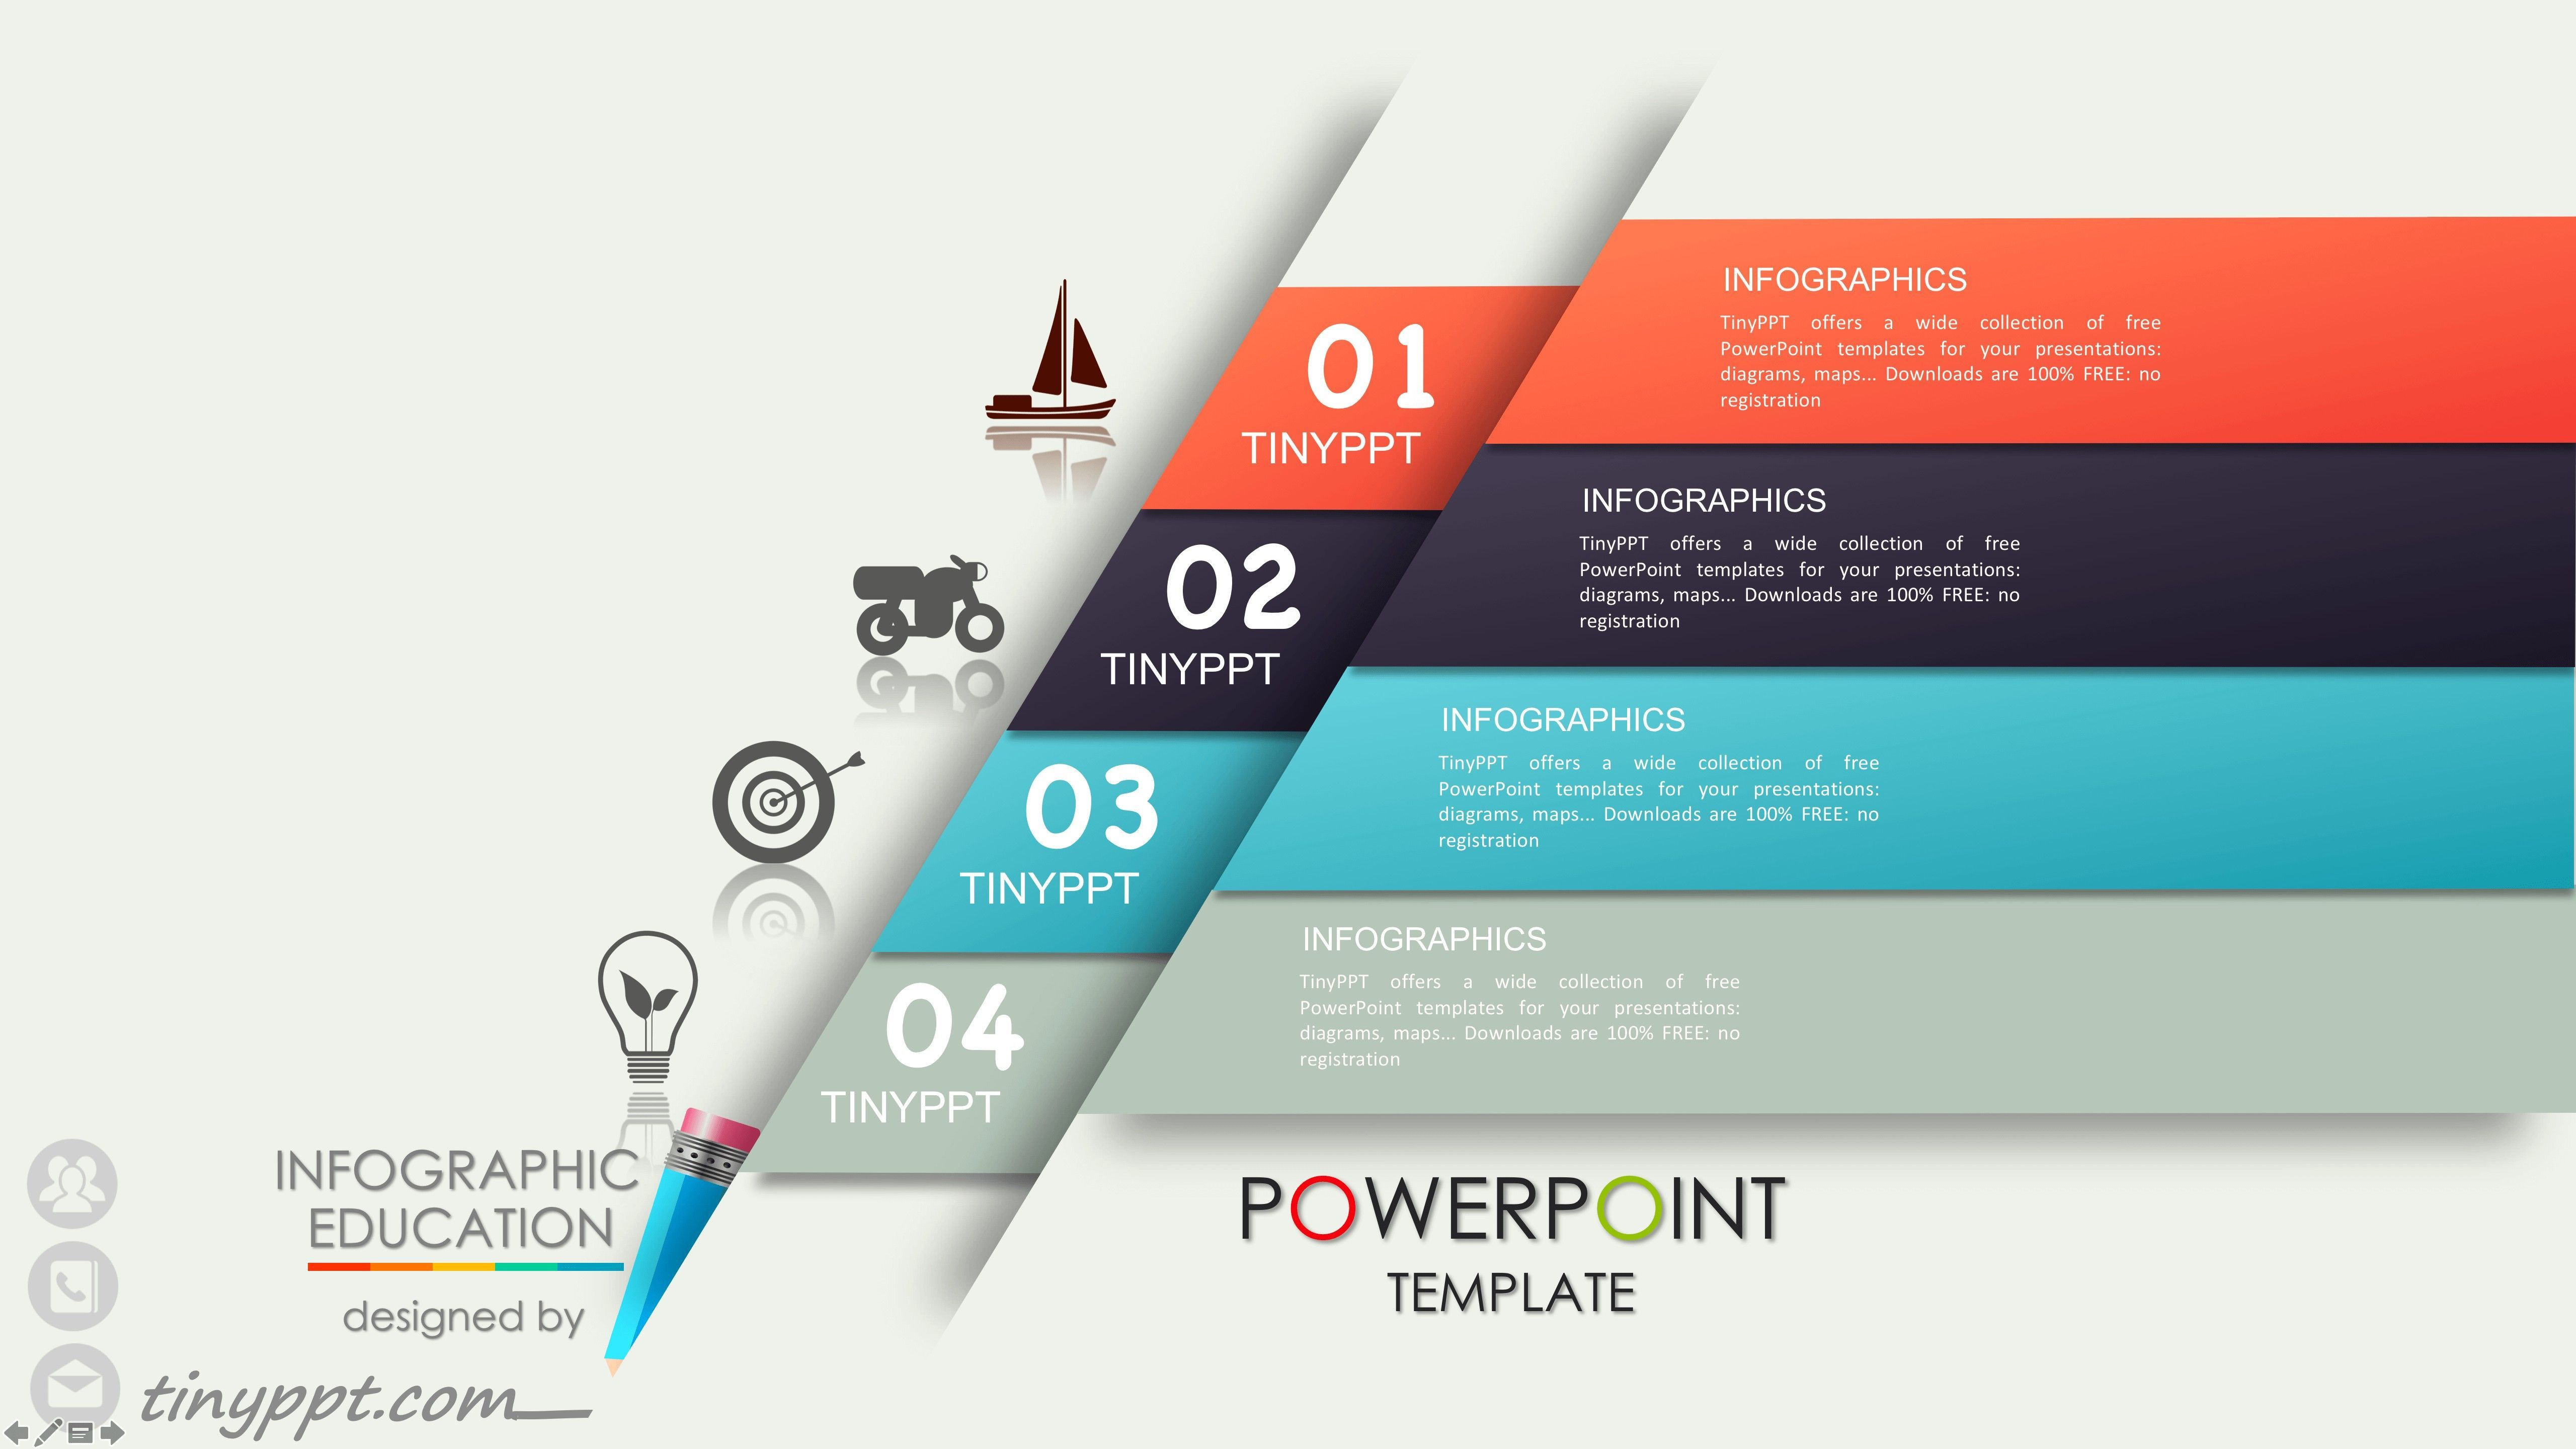 000 Archaicawful Free Download Ppt Template For Technical Presentation High Resolution  Simple Project SampleFull